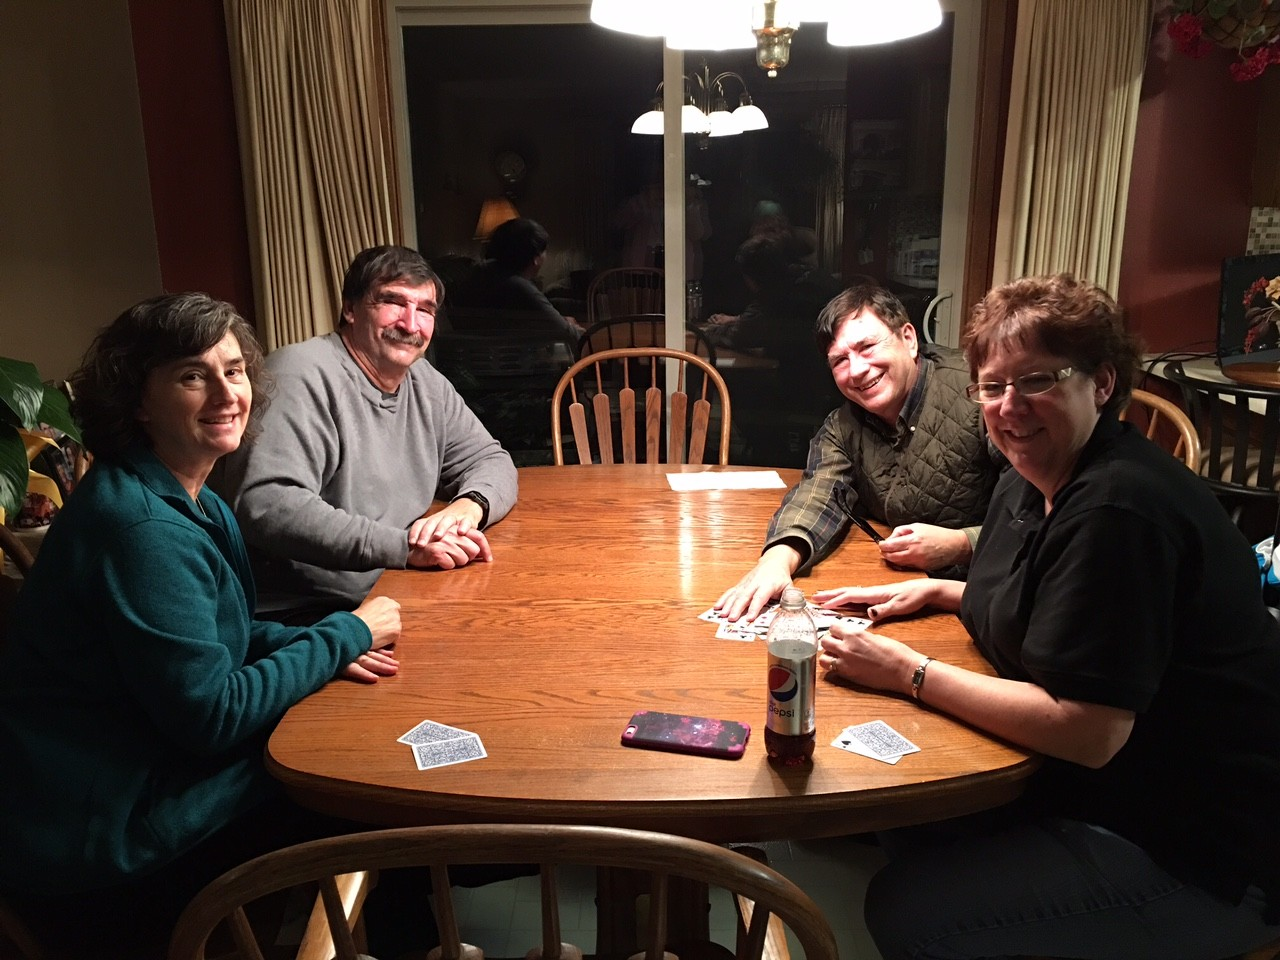 Playing Euchre in Grinnell